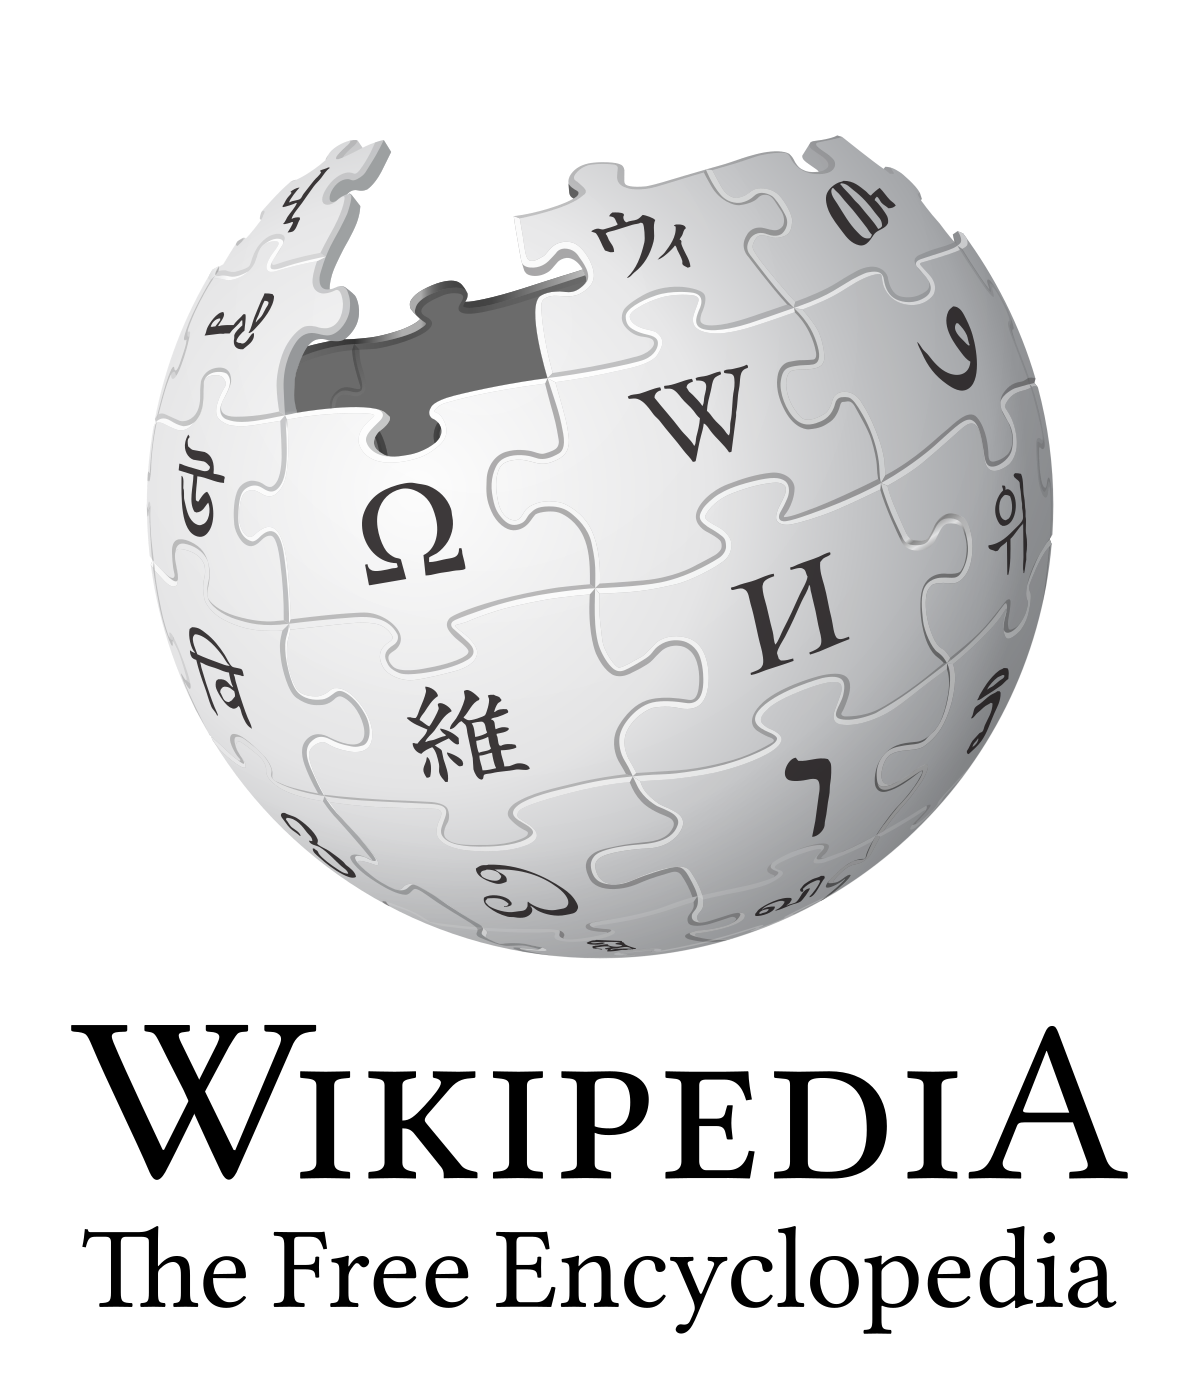 Government warns Wikipedia